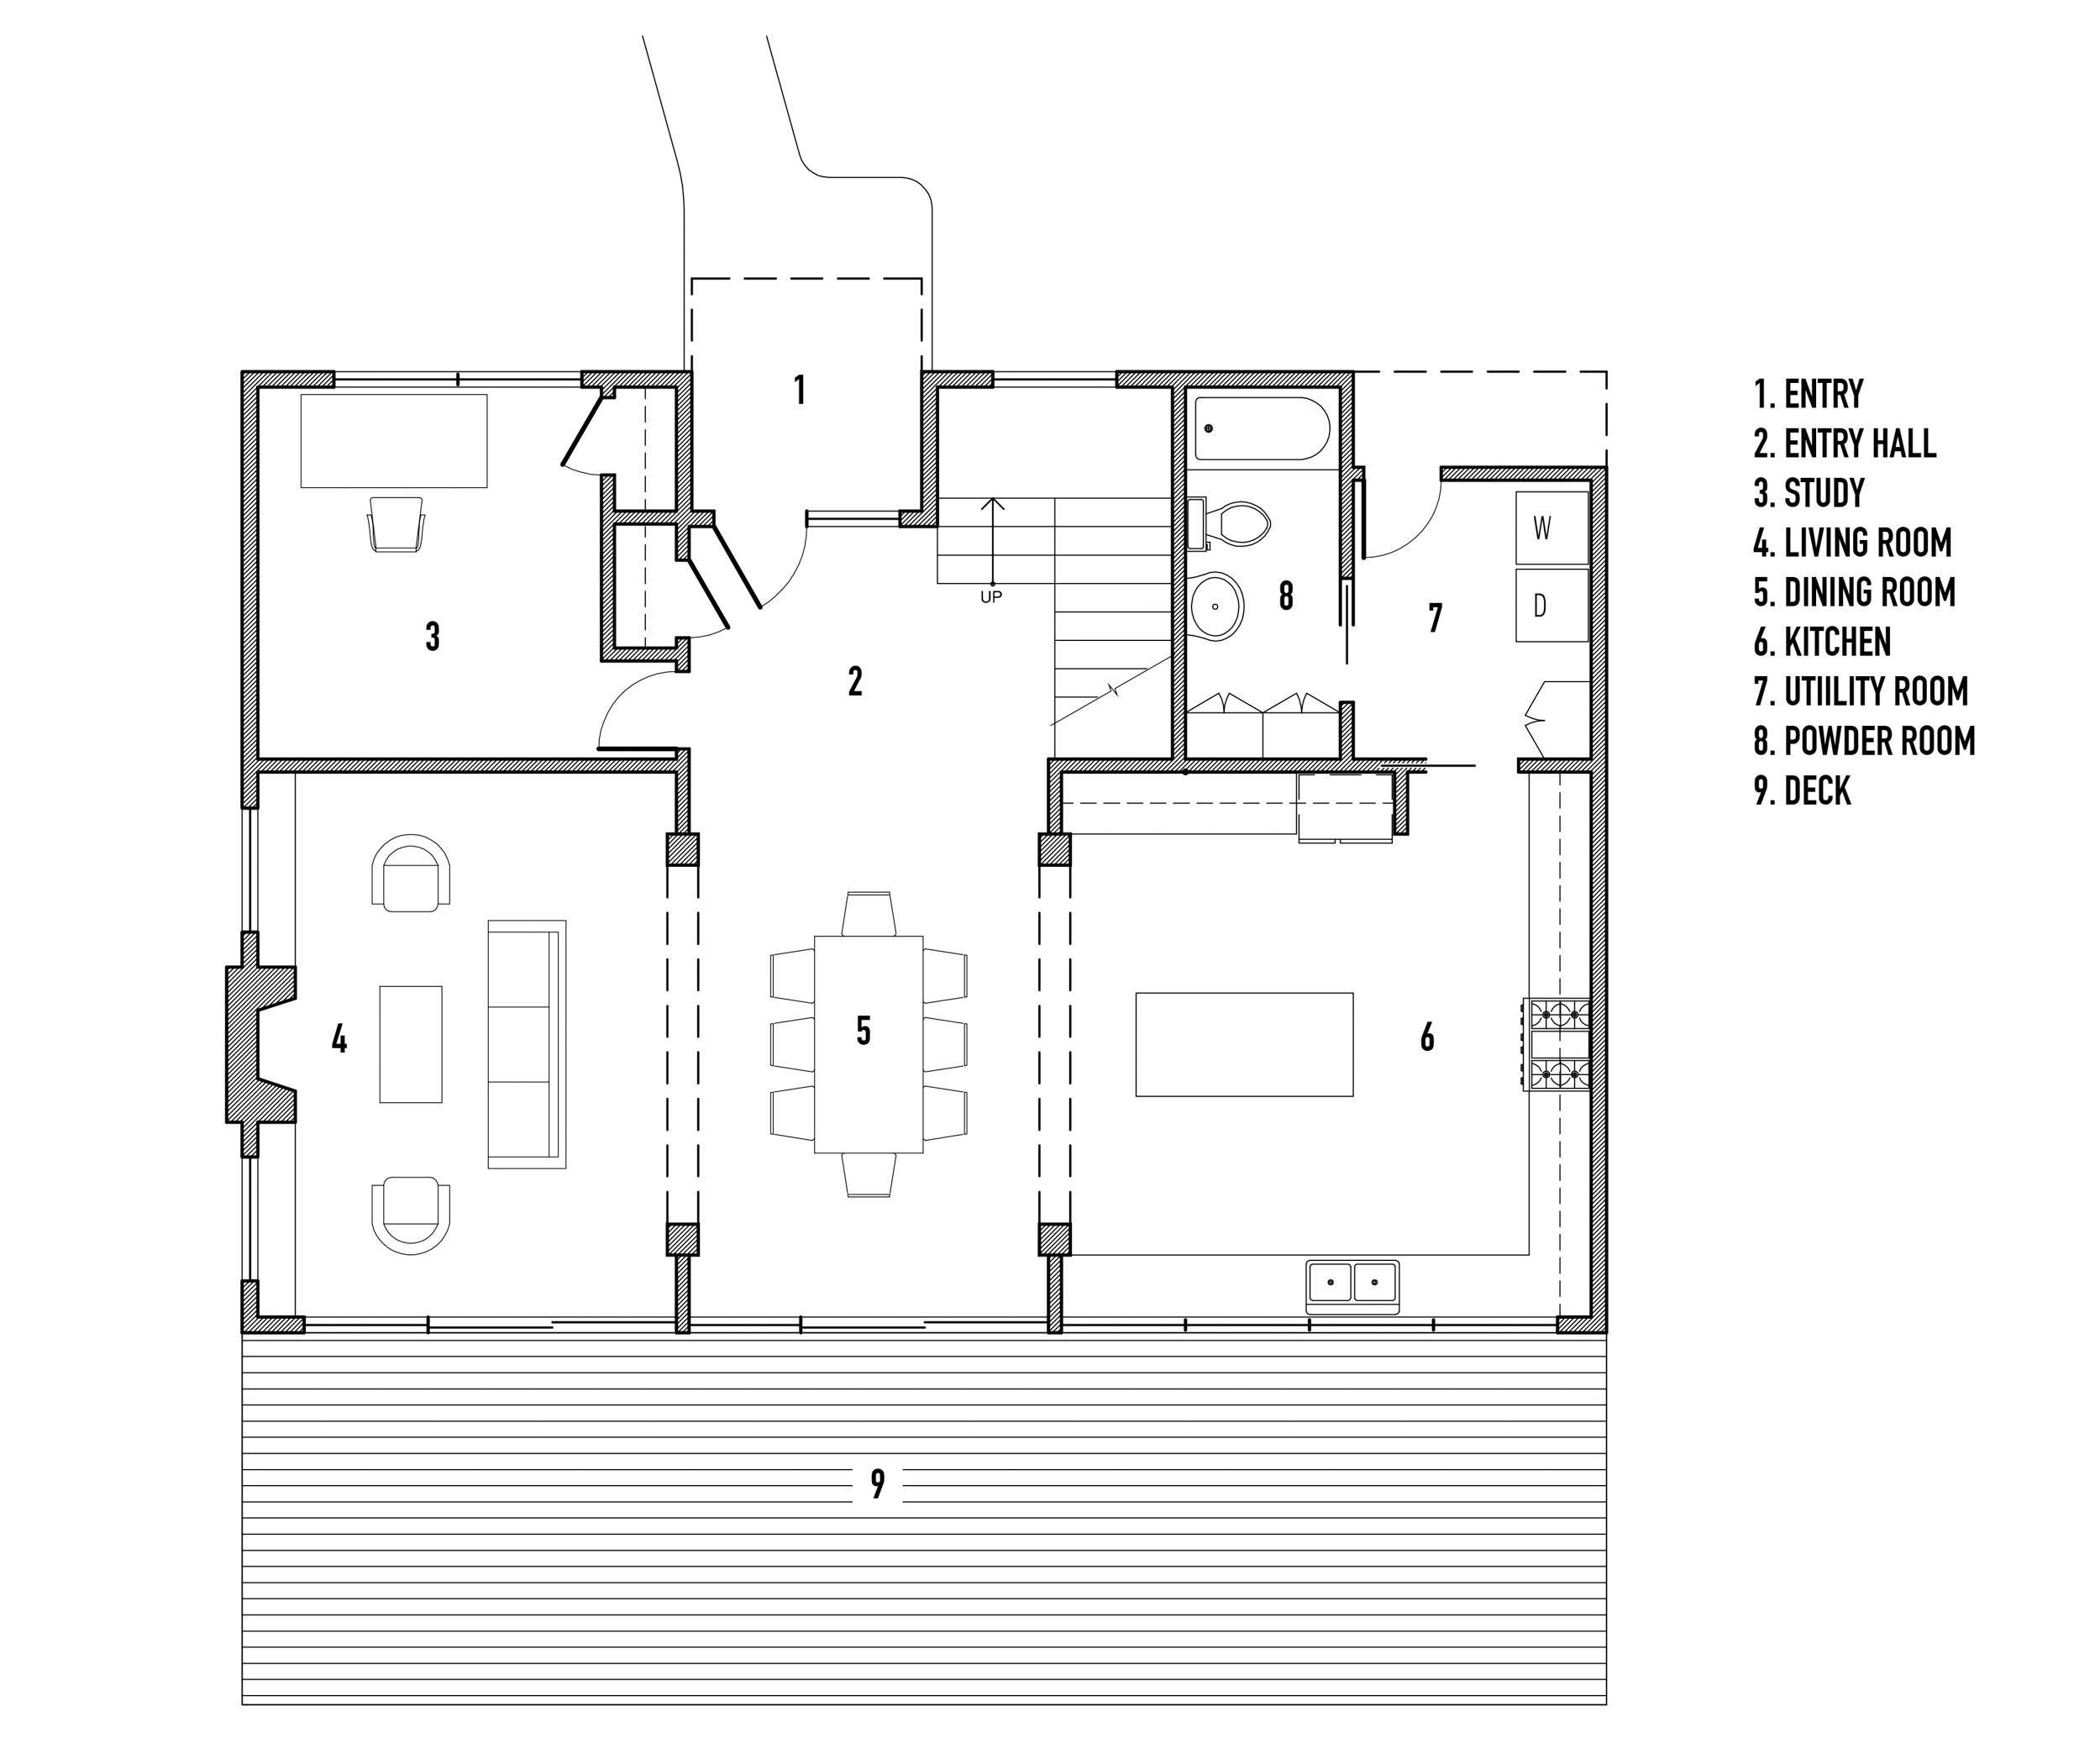 wc-studio-bellingham-bay-house-first-floor-plan.jpg